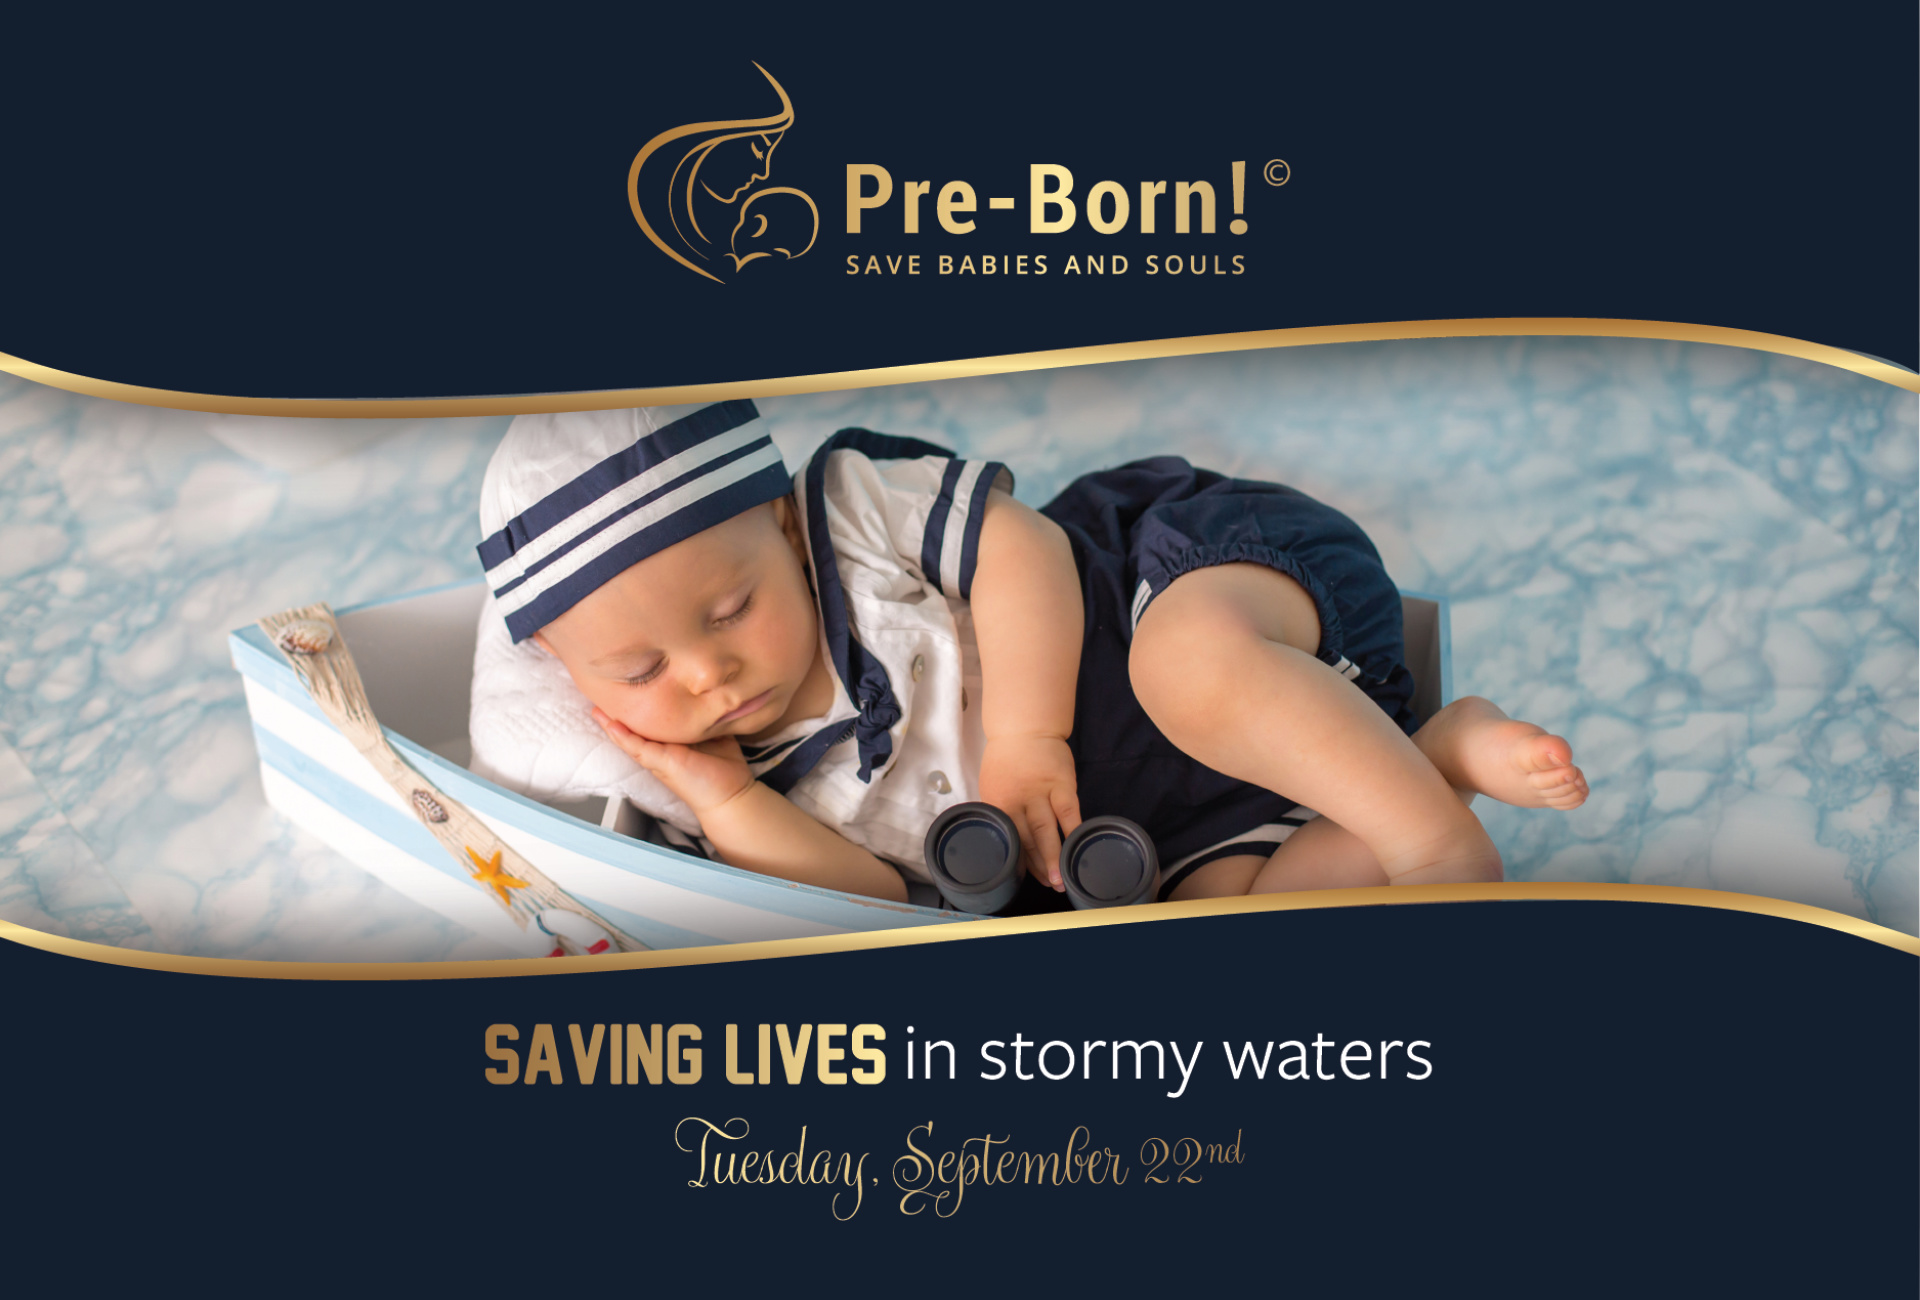 Saving Lives in stormy waters banner